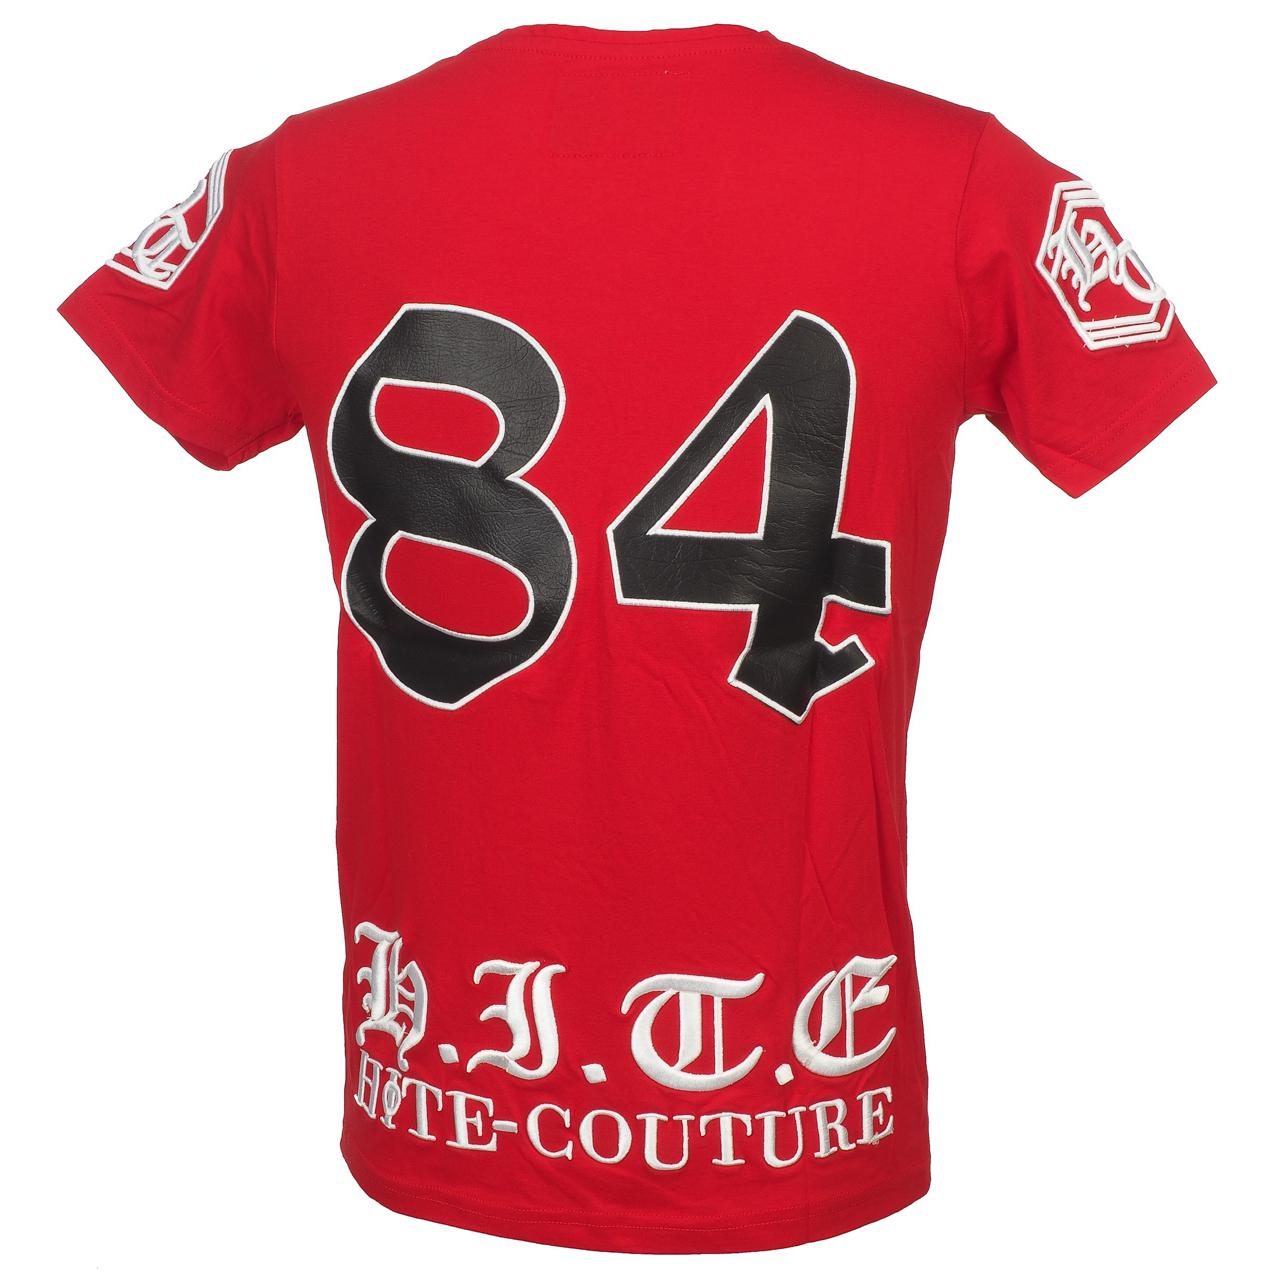 Short-Hite-Couture-Mount-Red-Mc-Tee-Red-11554-New thumbnail 5